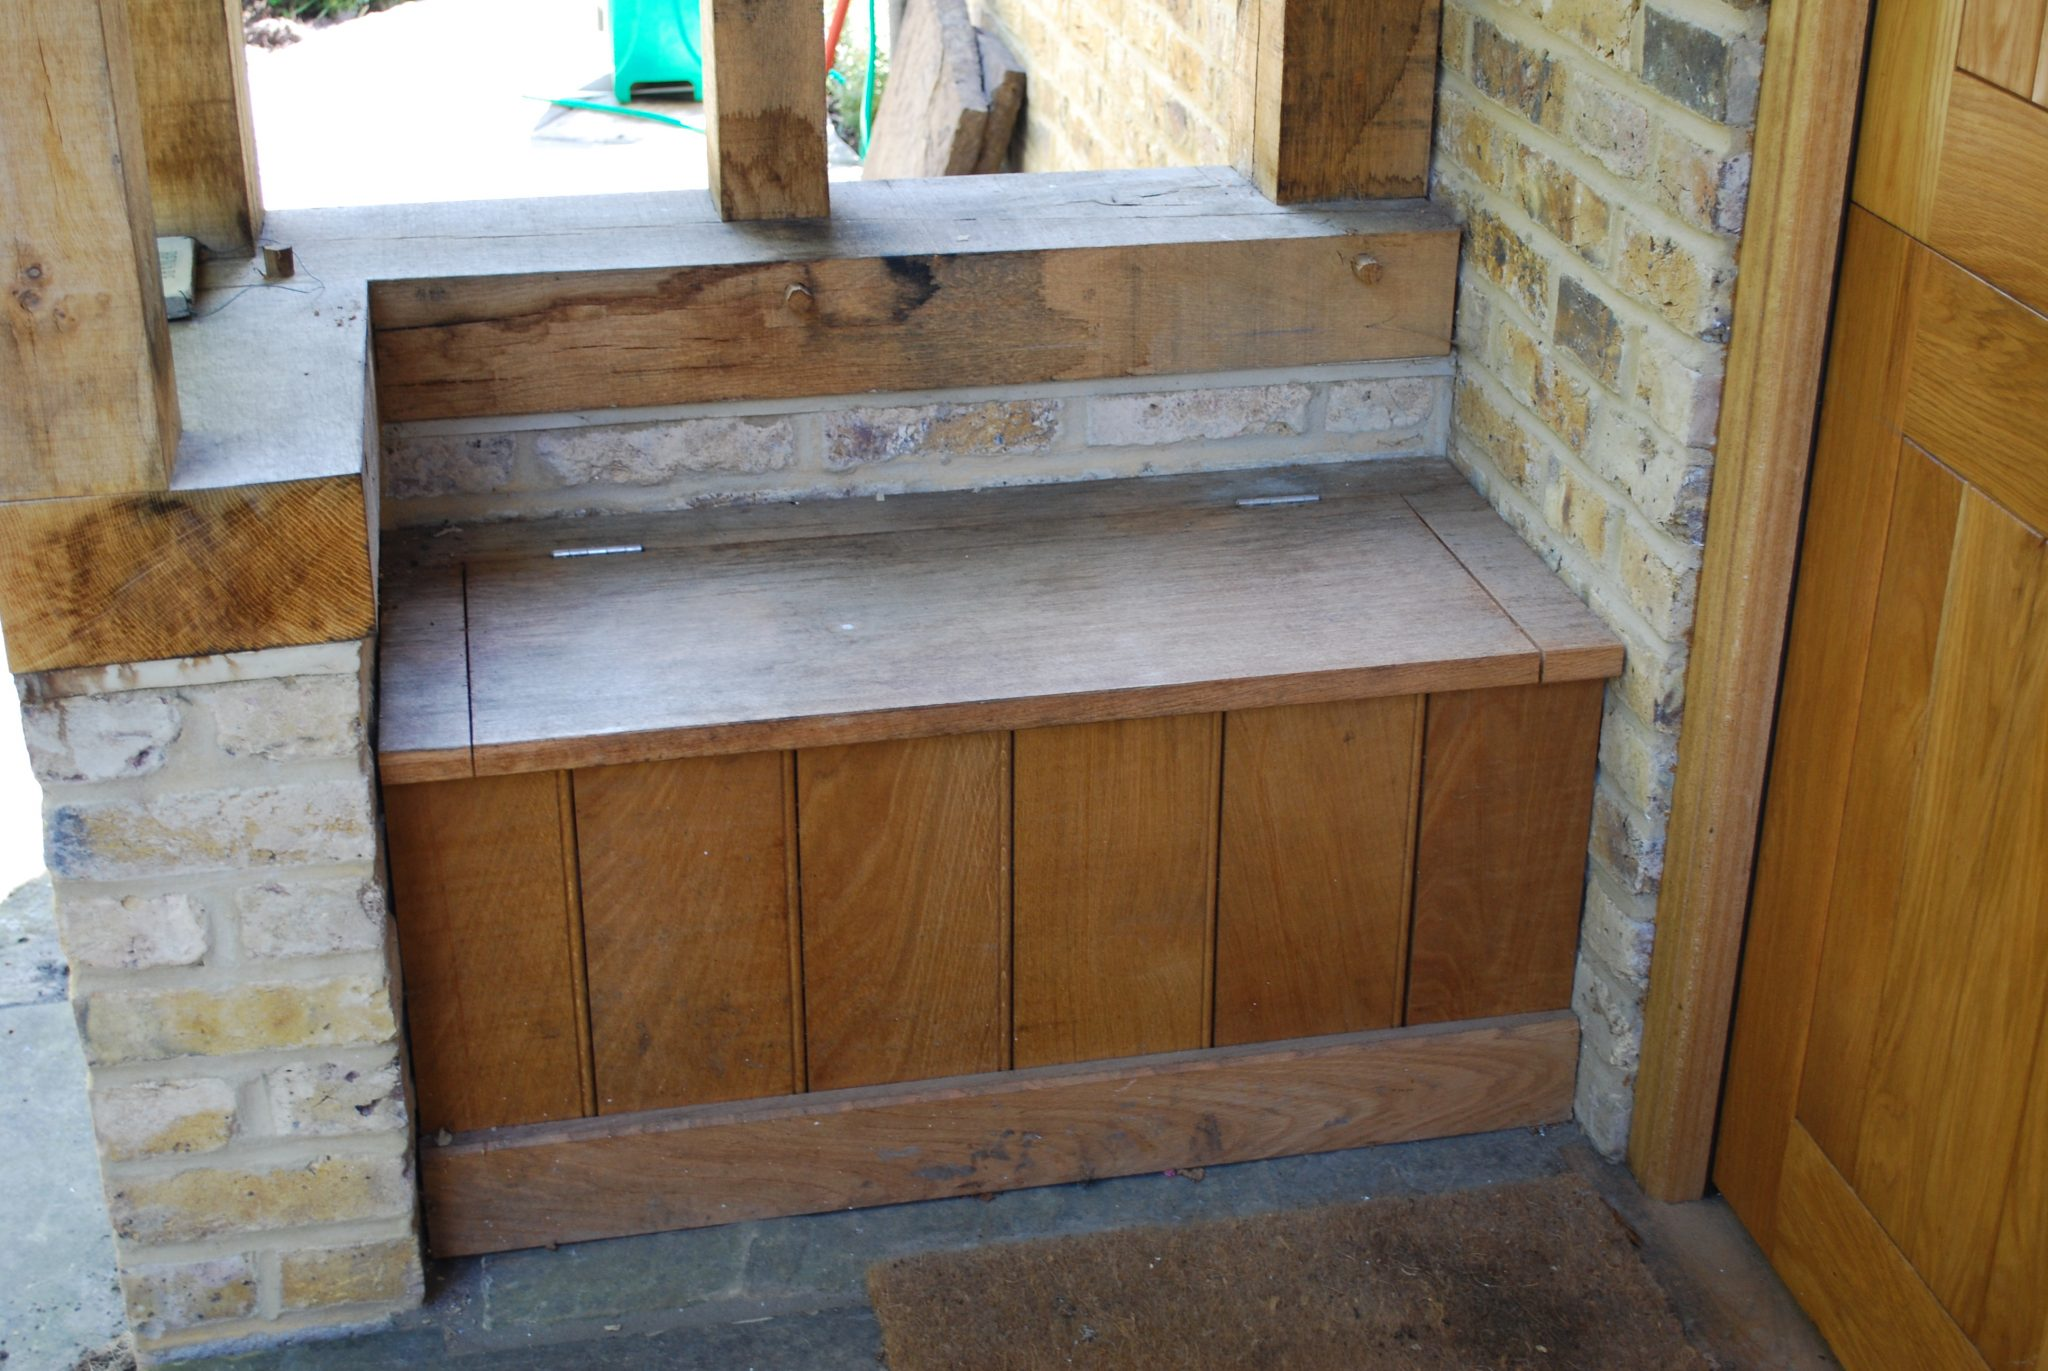 oak frame porch with boot seat - Mullberry